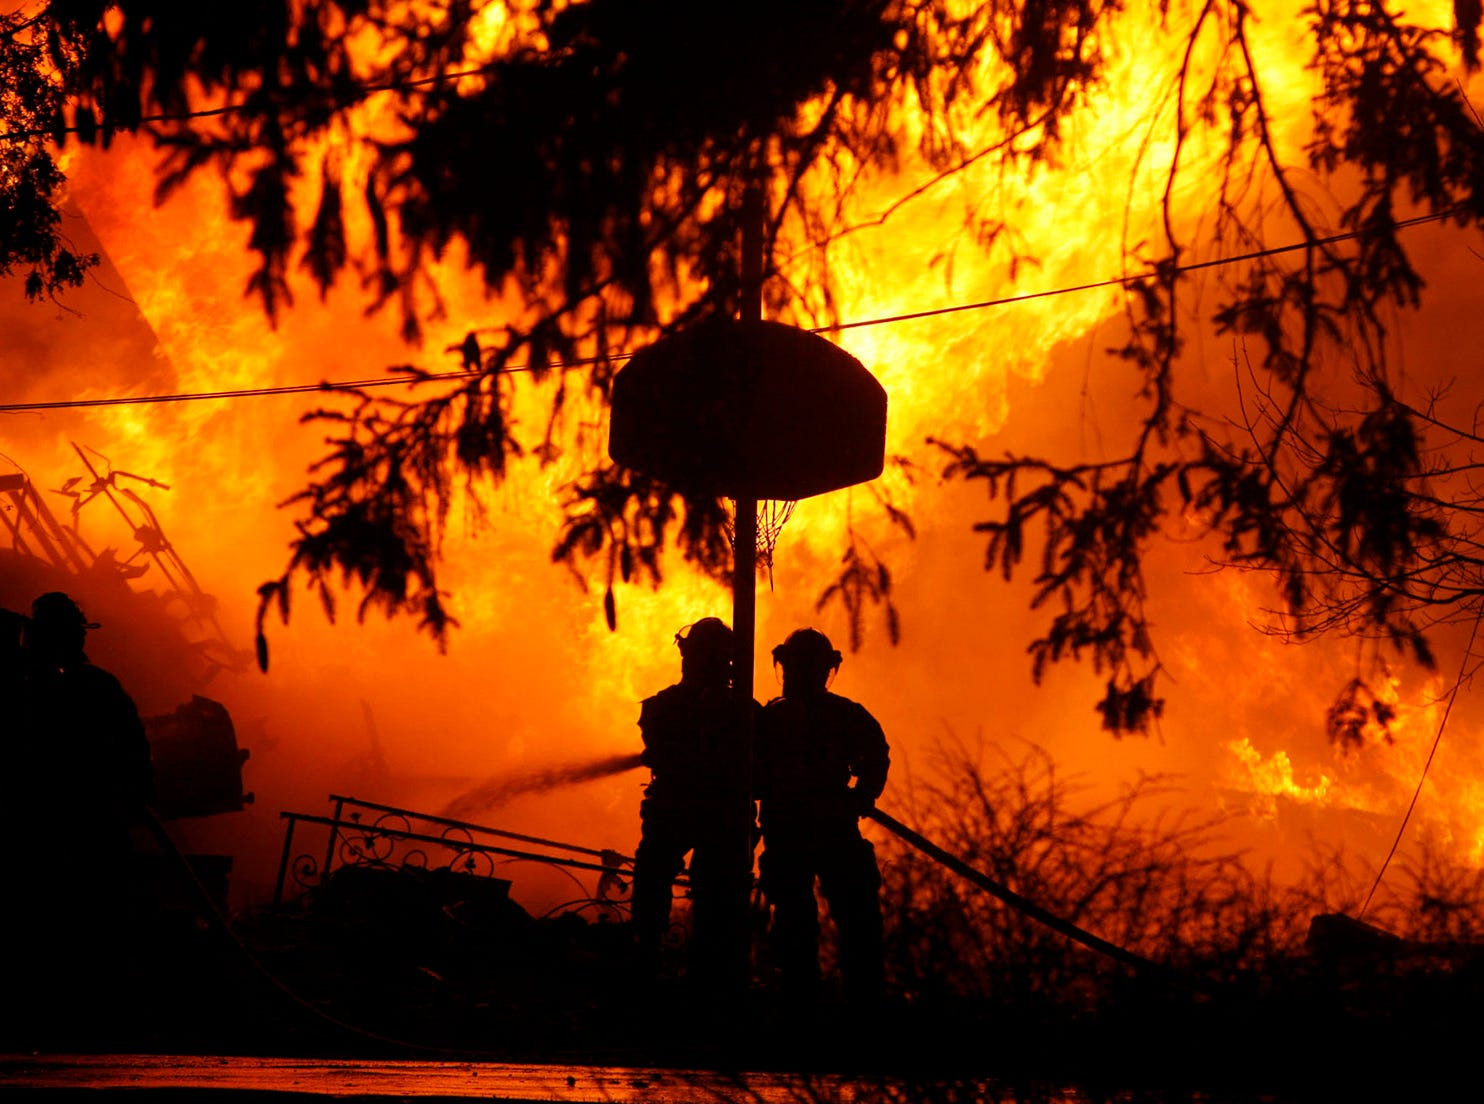 Volunteer firefighters attempt to put out the flames from Continental Airlines Flight 3407 on Thursday Feb. 12, 2009 after it crashed into a home in Clarence Center, N.Y. killing all 48 people on board and one on the ground according to officials. (AP Photo/The Buffalo News - Harry Scull Jr)